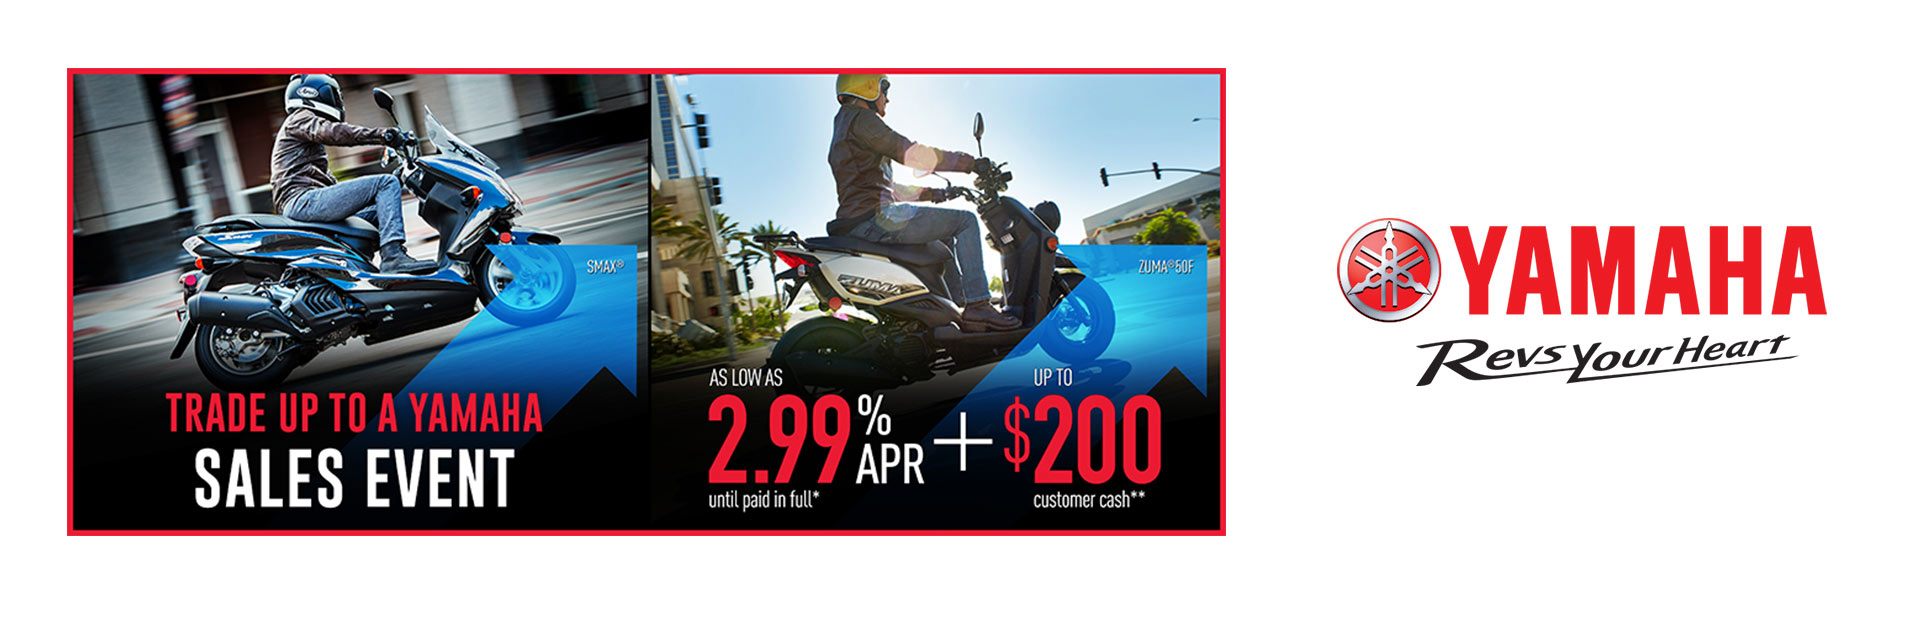 Yamaha: As Low As 2.99% APR Until Paid In Full (Scooters)